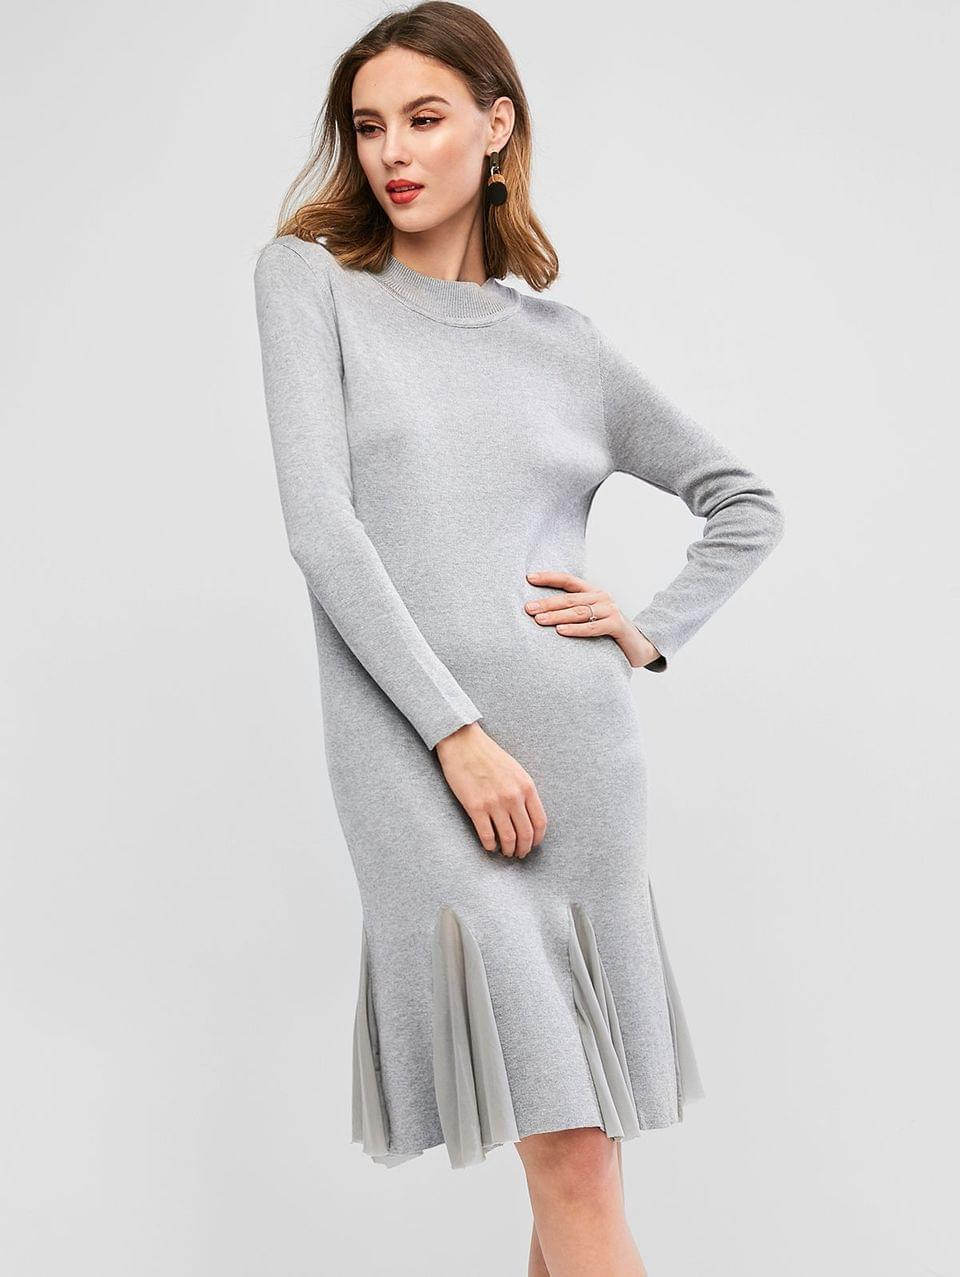 Women's Long Sleeve Mesh Panel Flounced Hem Sweater Dress - Gray